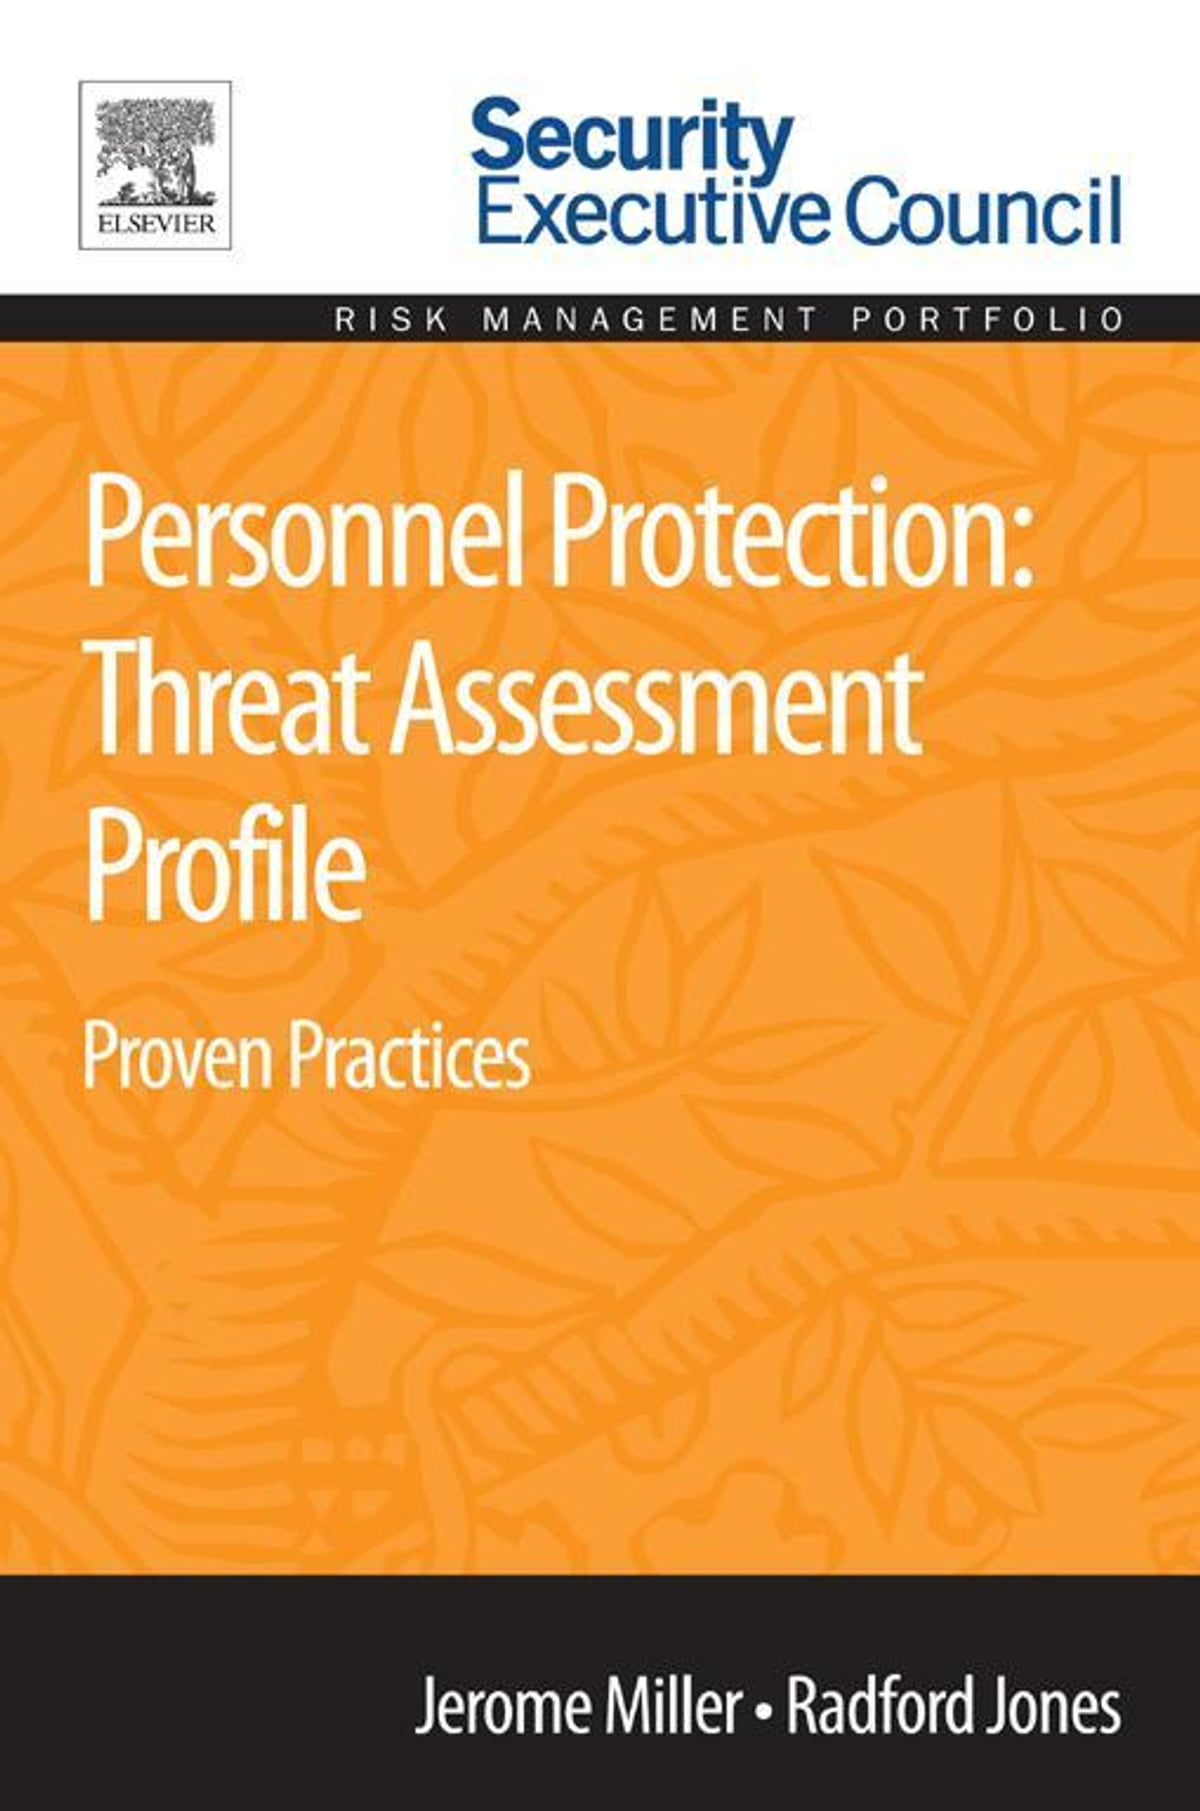 Personnel Protection: Threat Assessment Profile. Proven Practices